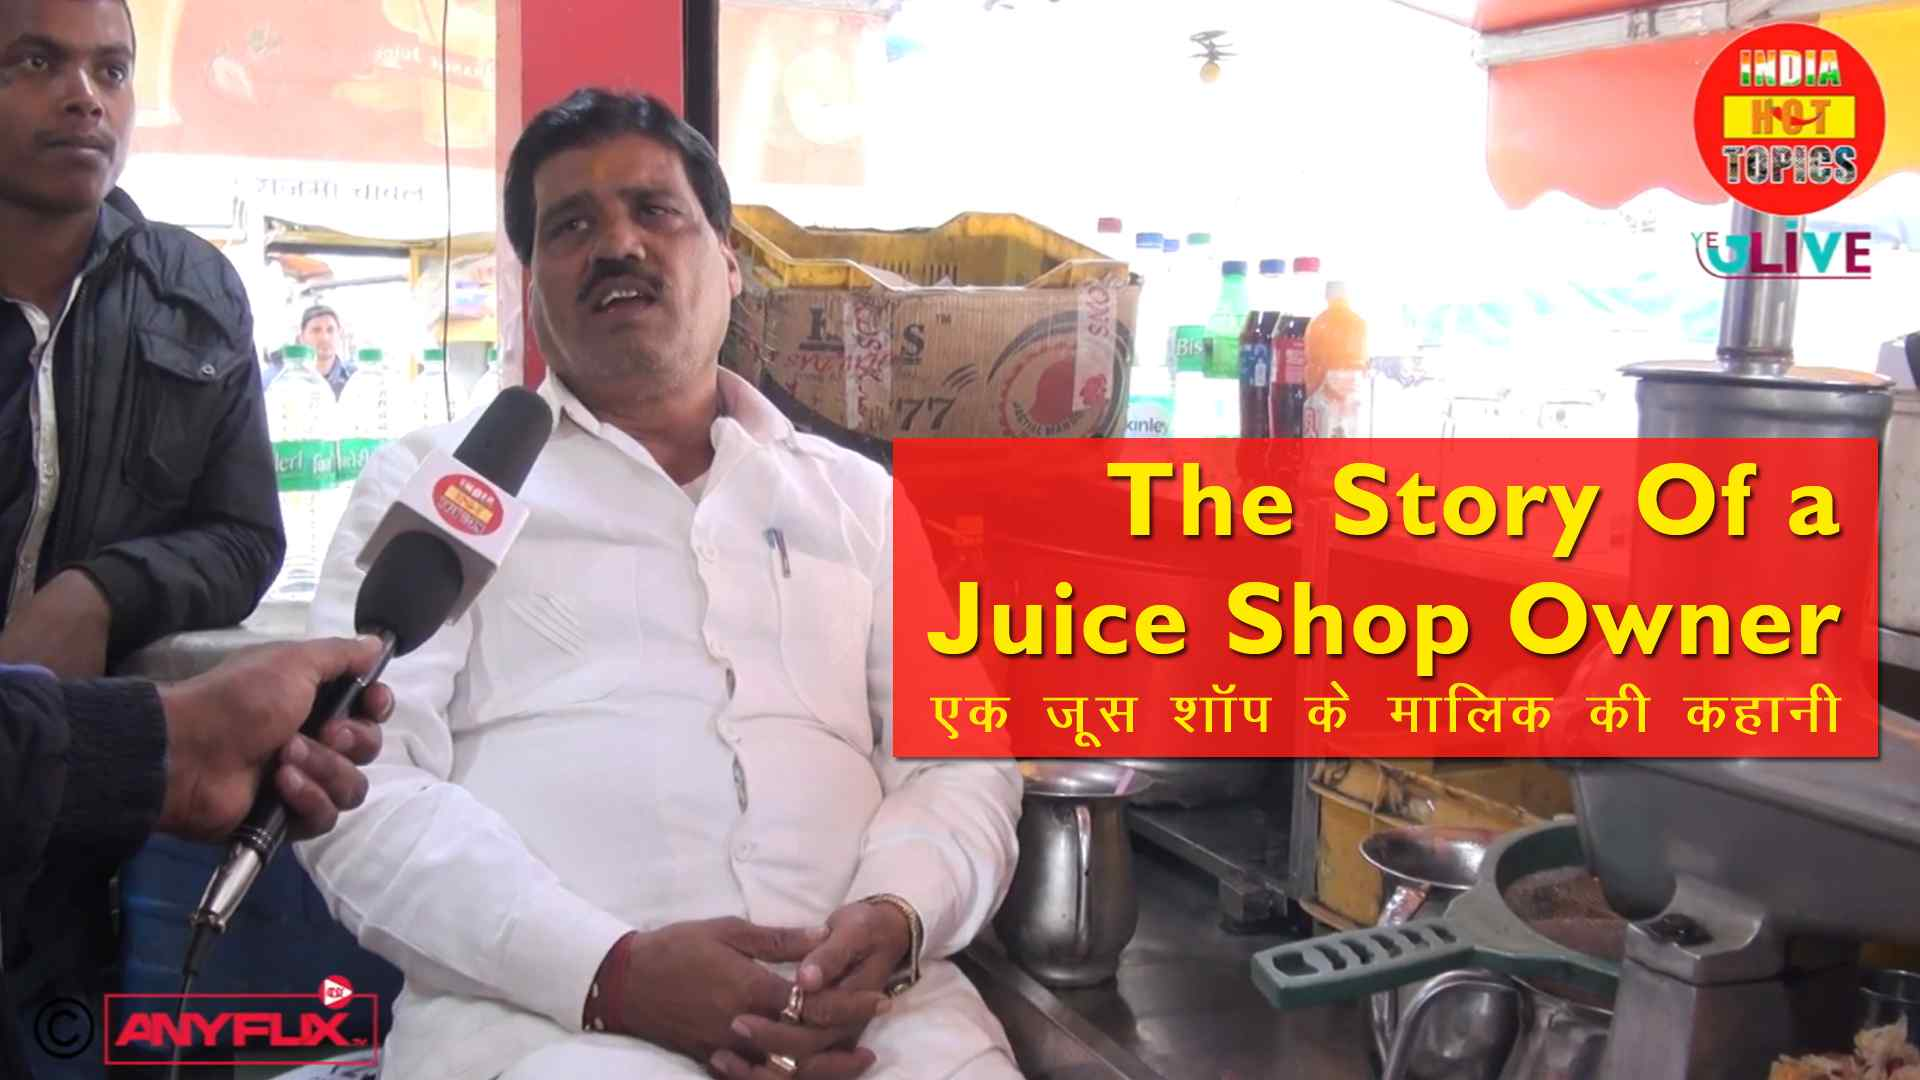 The Story Of a Juice Shop owner|Ye Zindagi Live| India Hot Topics